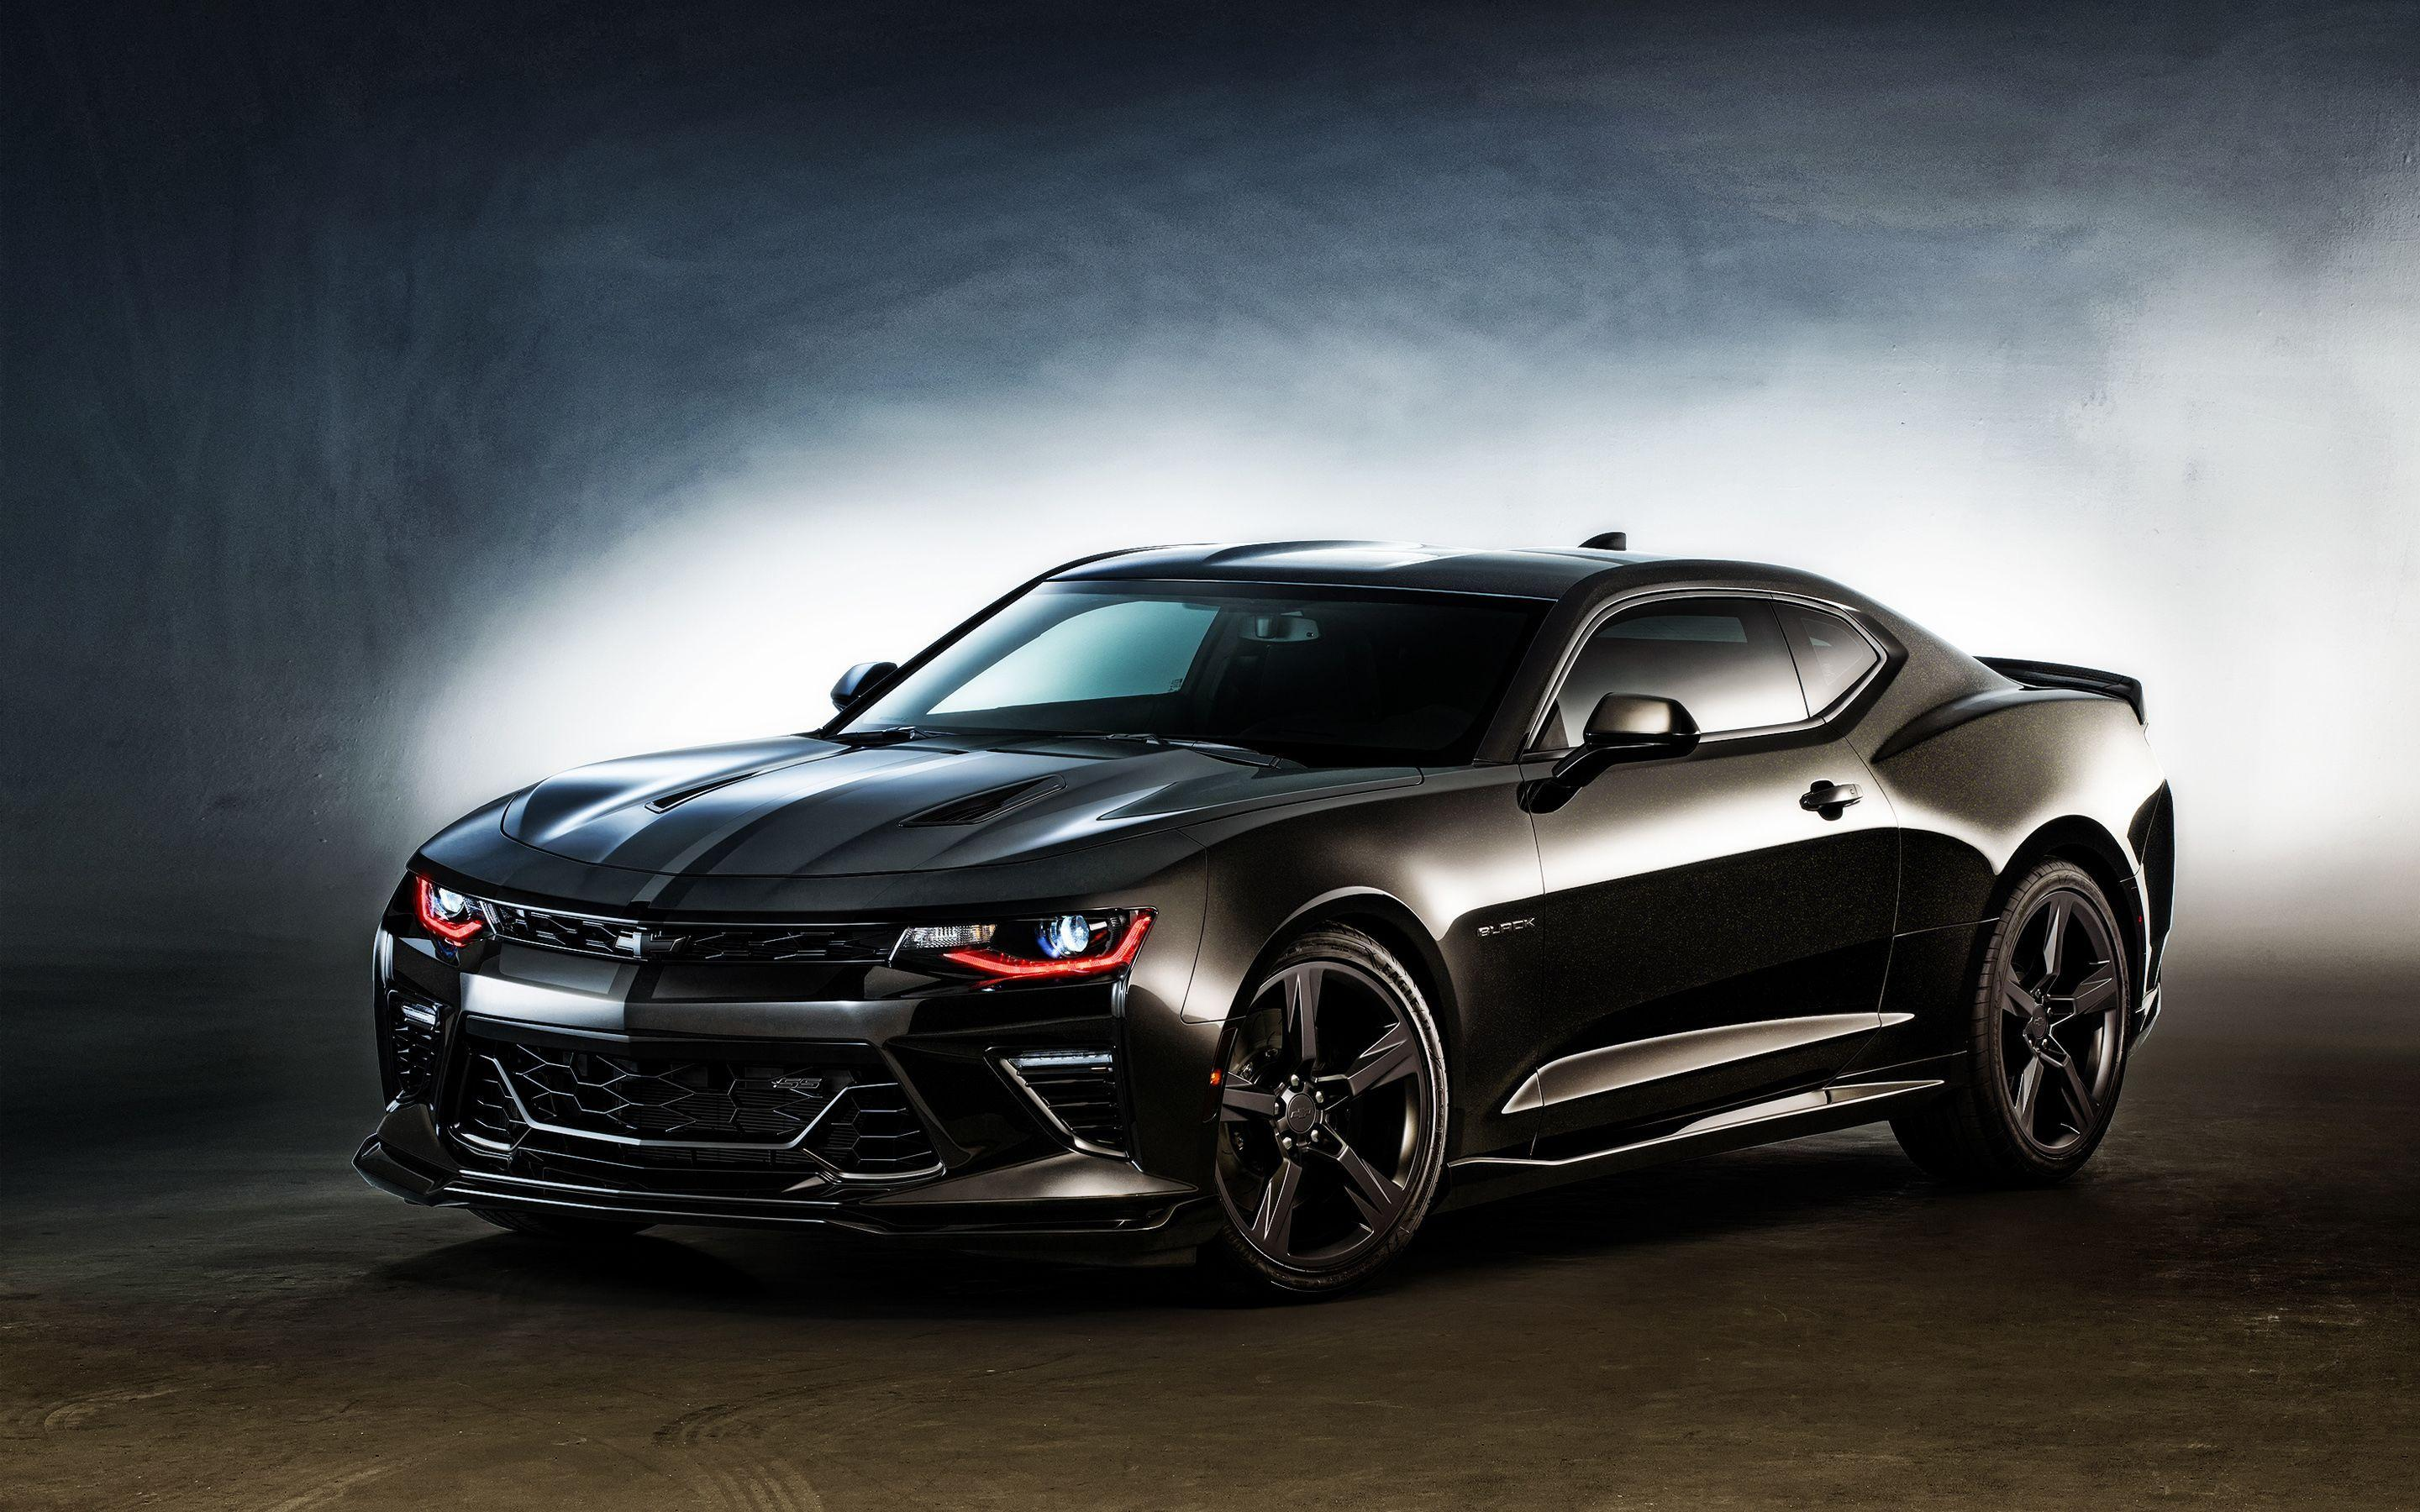 2016 Camaro Zl1 Wallpapers 2880x1800